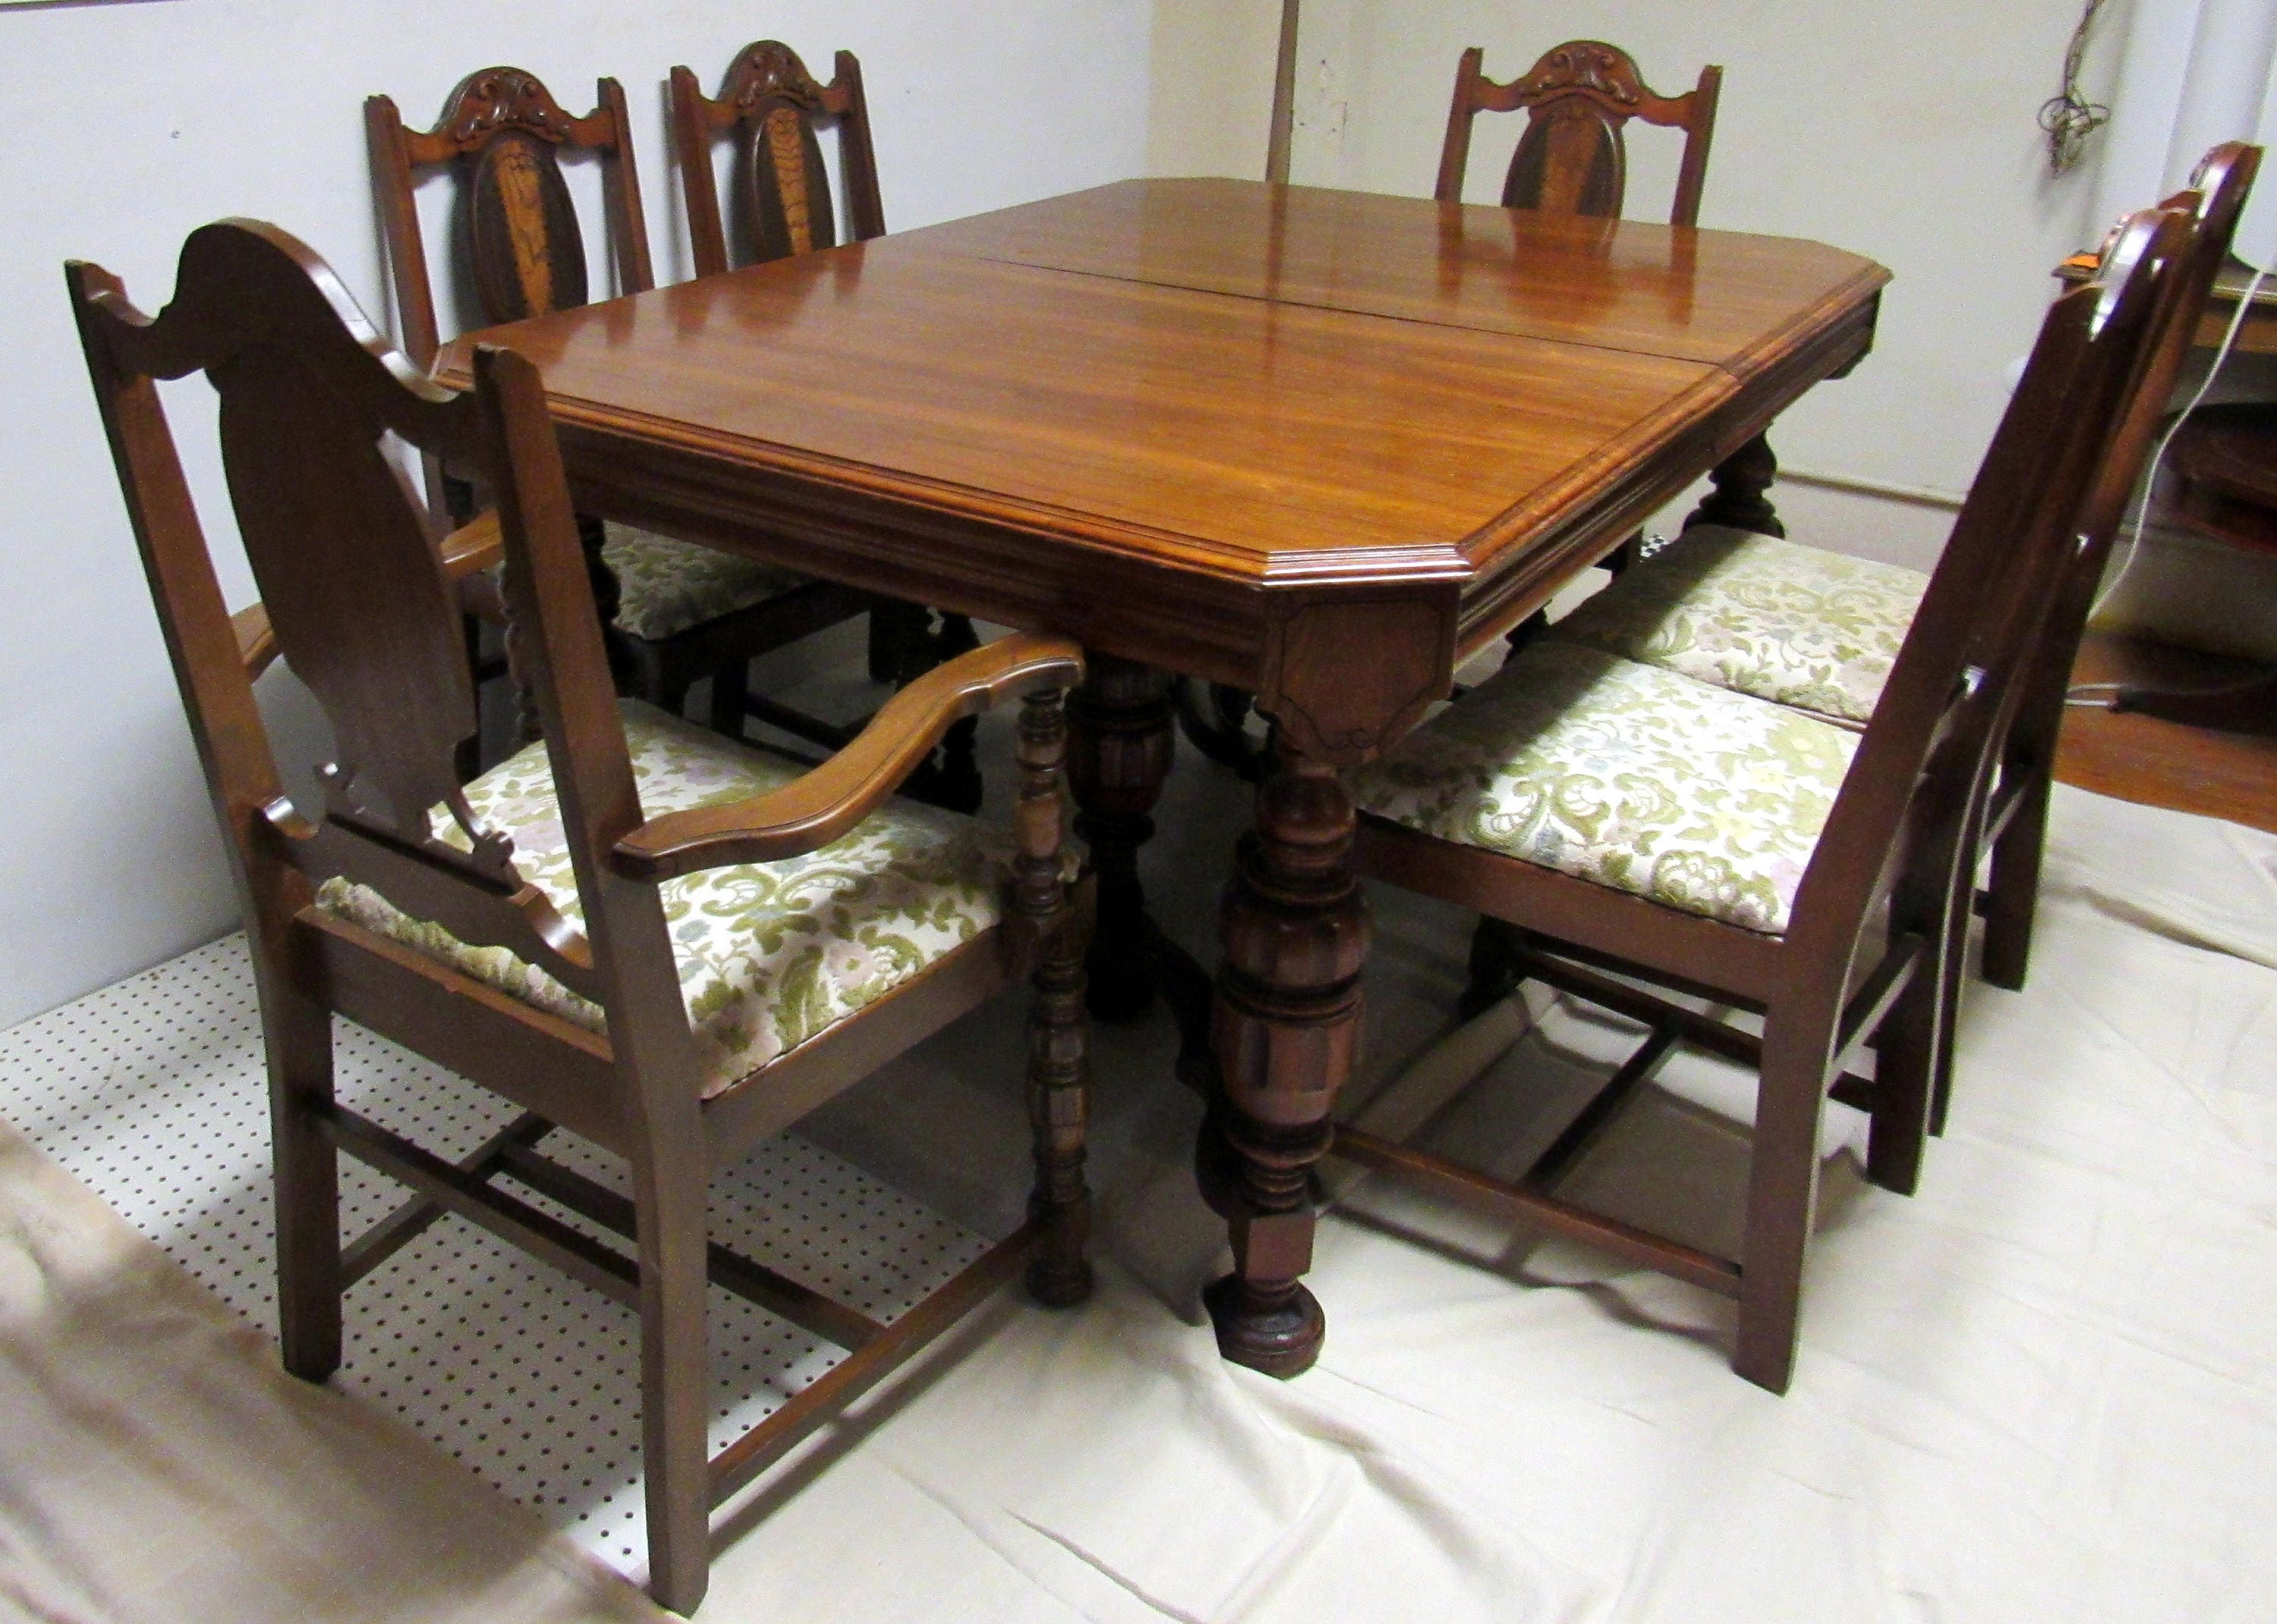 1920 s Dining Table and 6 chairs with butterfly leaf